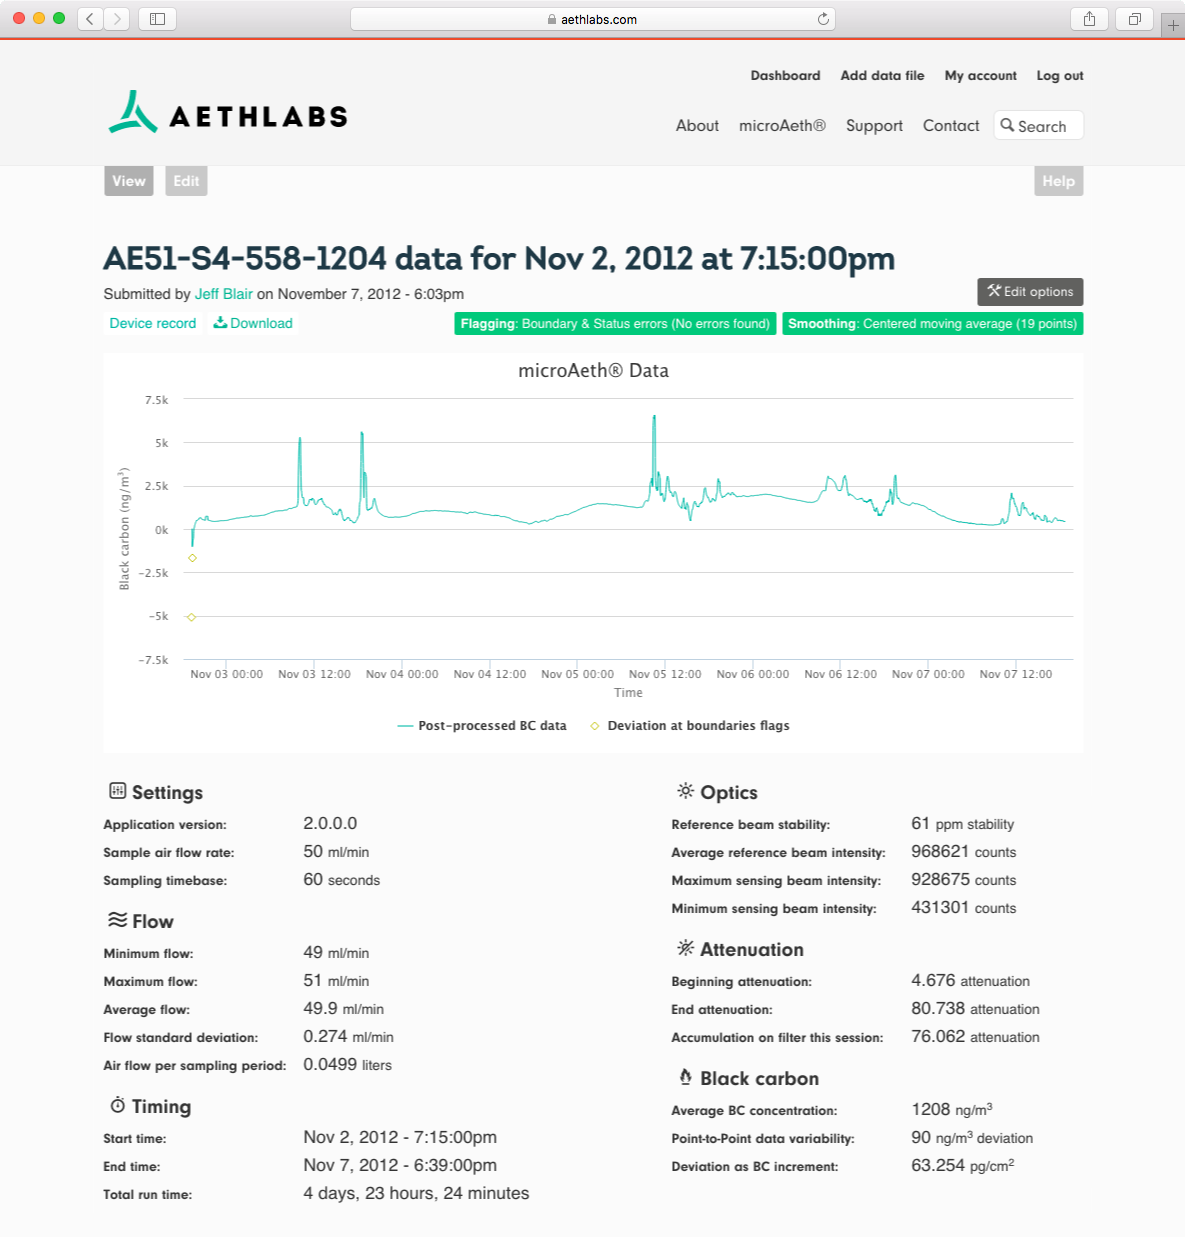 Dashboard / Data file screenshot